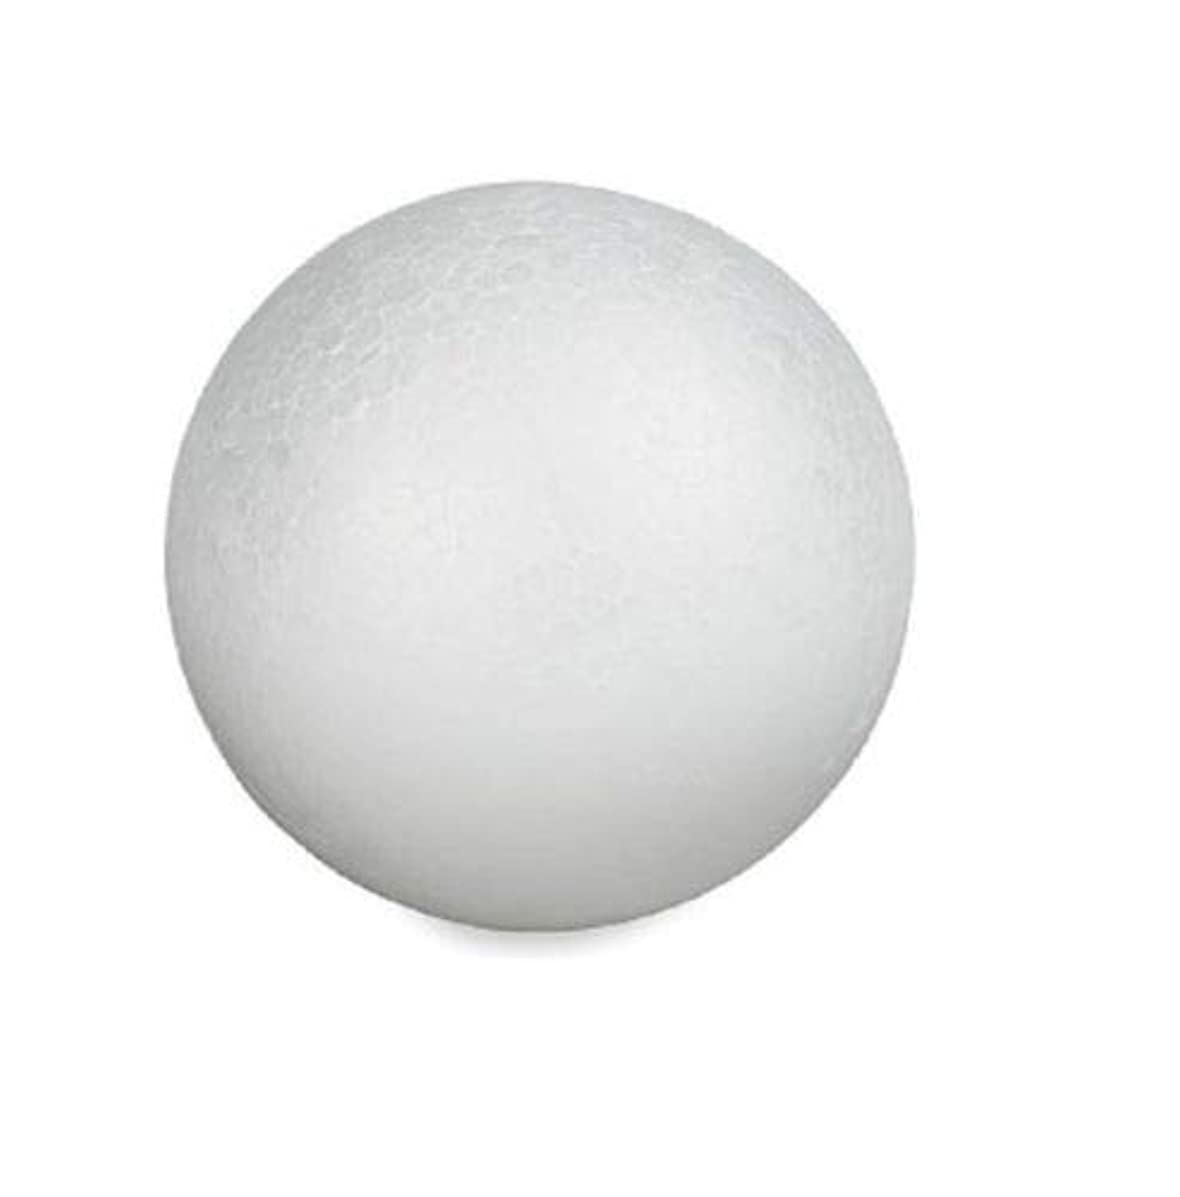 Craft Foam Ball - Smooth Styrofoam Polystyrene Balls for Craft and Project (2